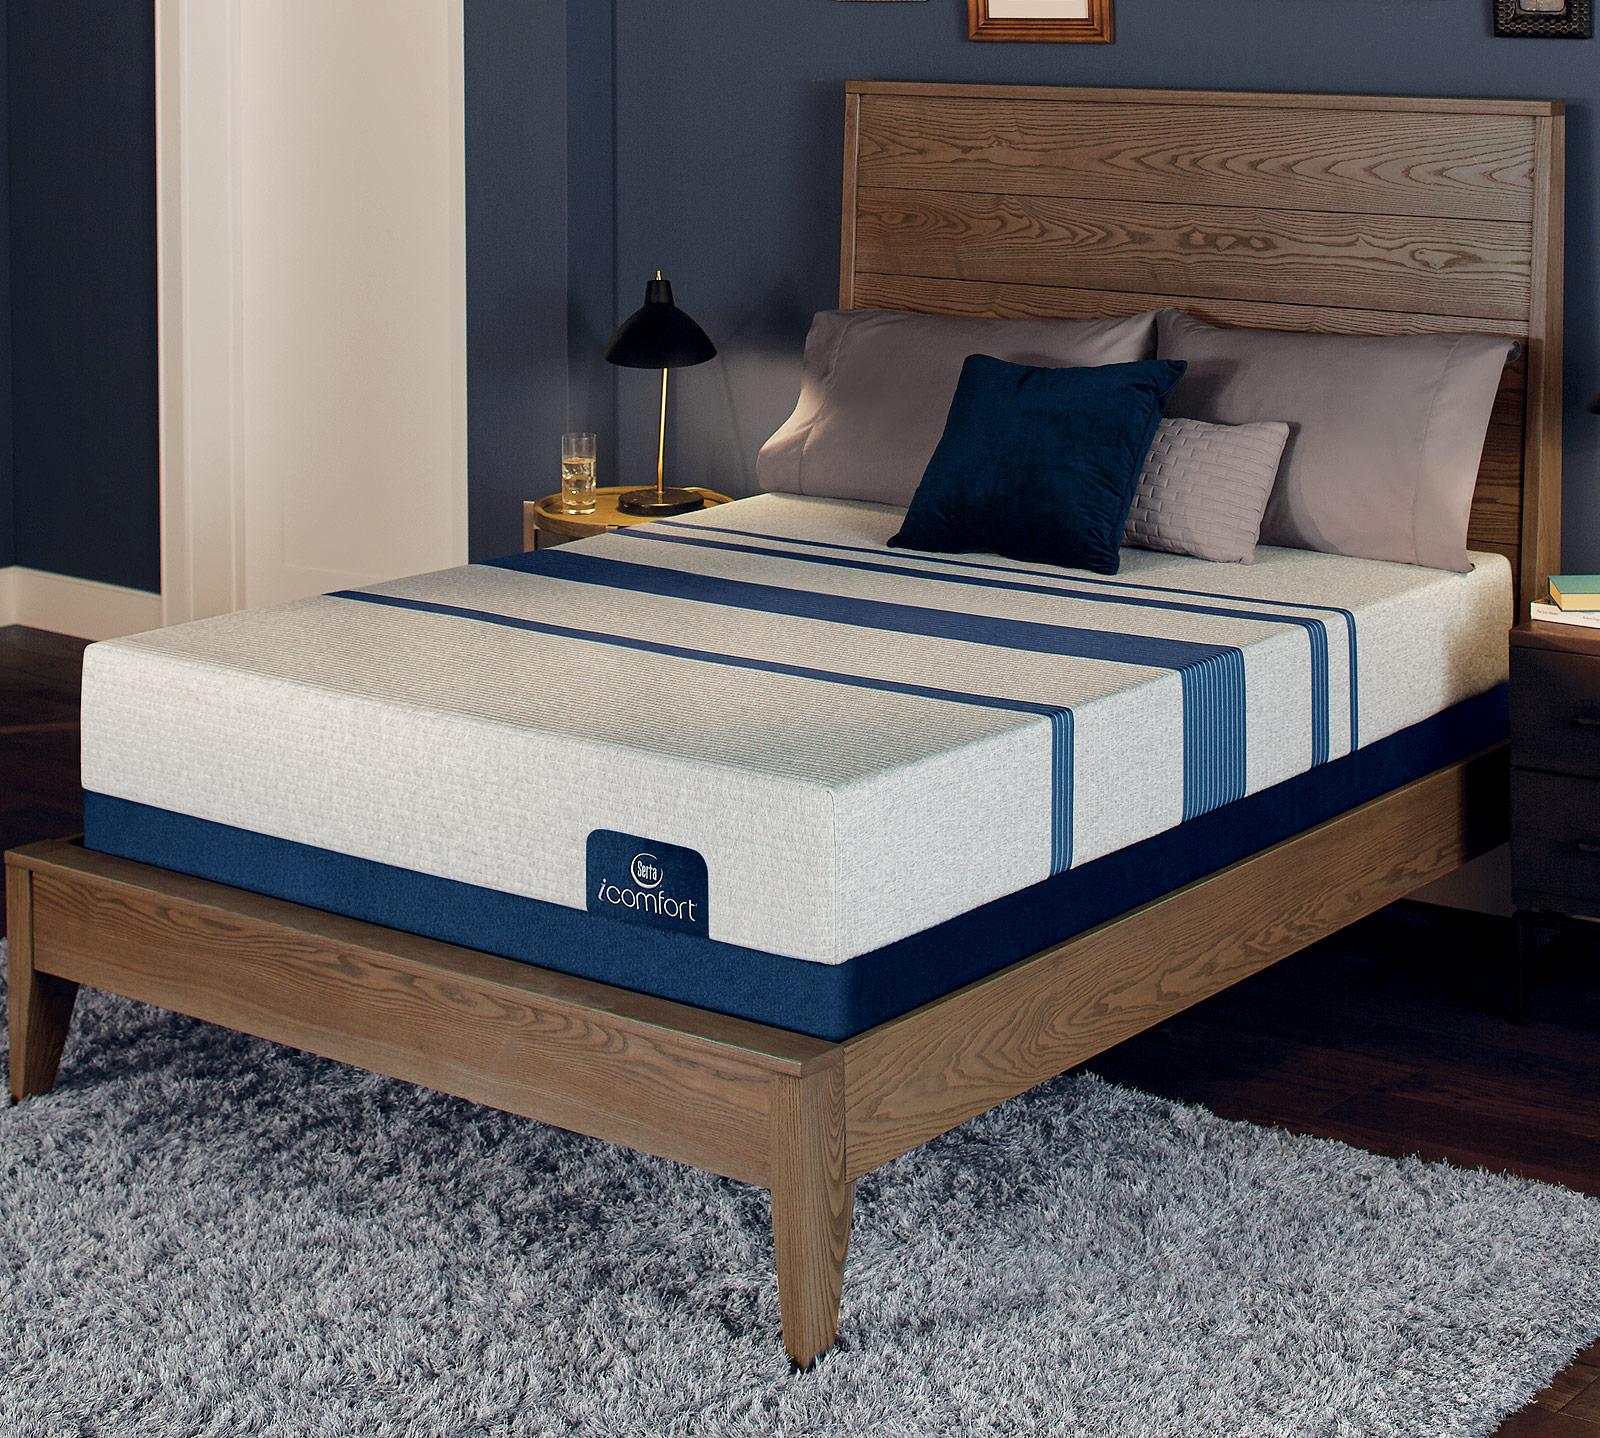 serta mattresses mattress firm